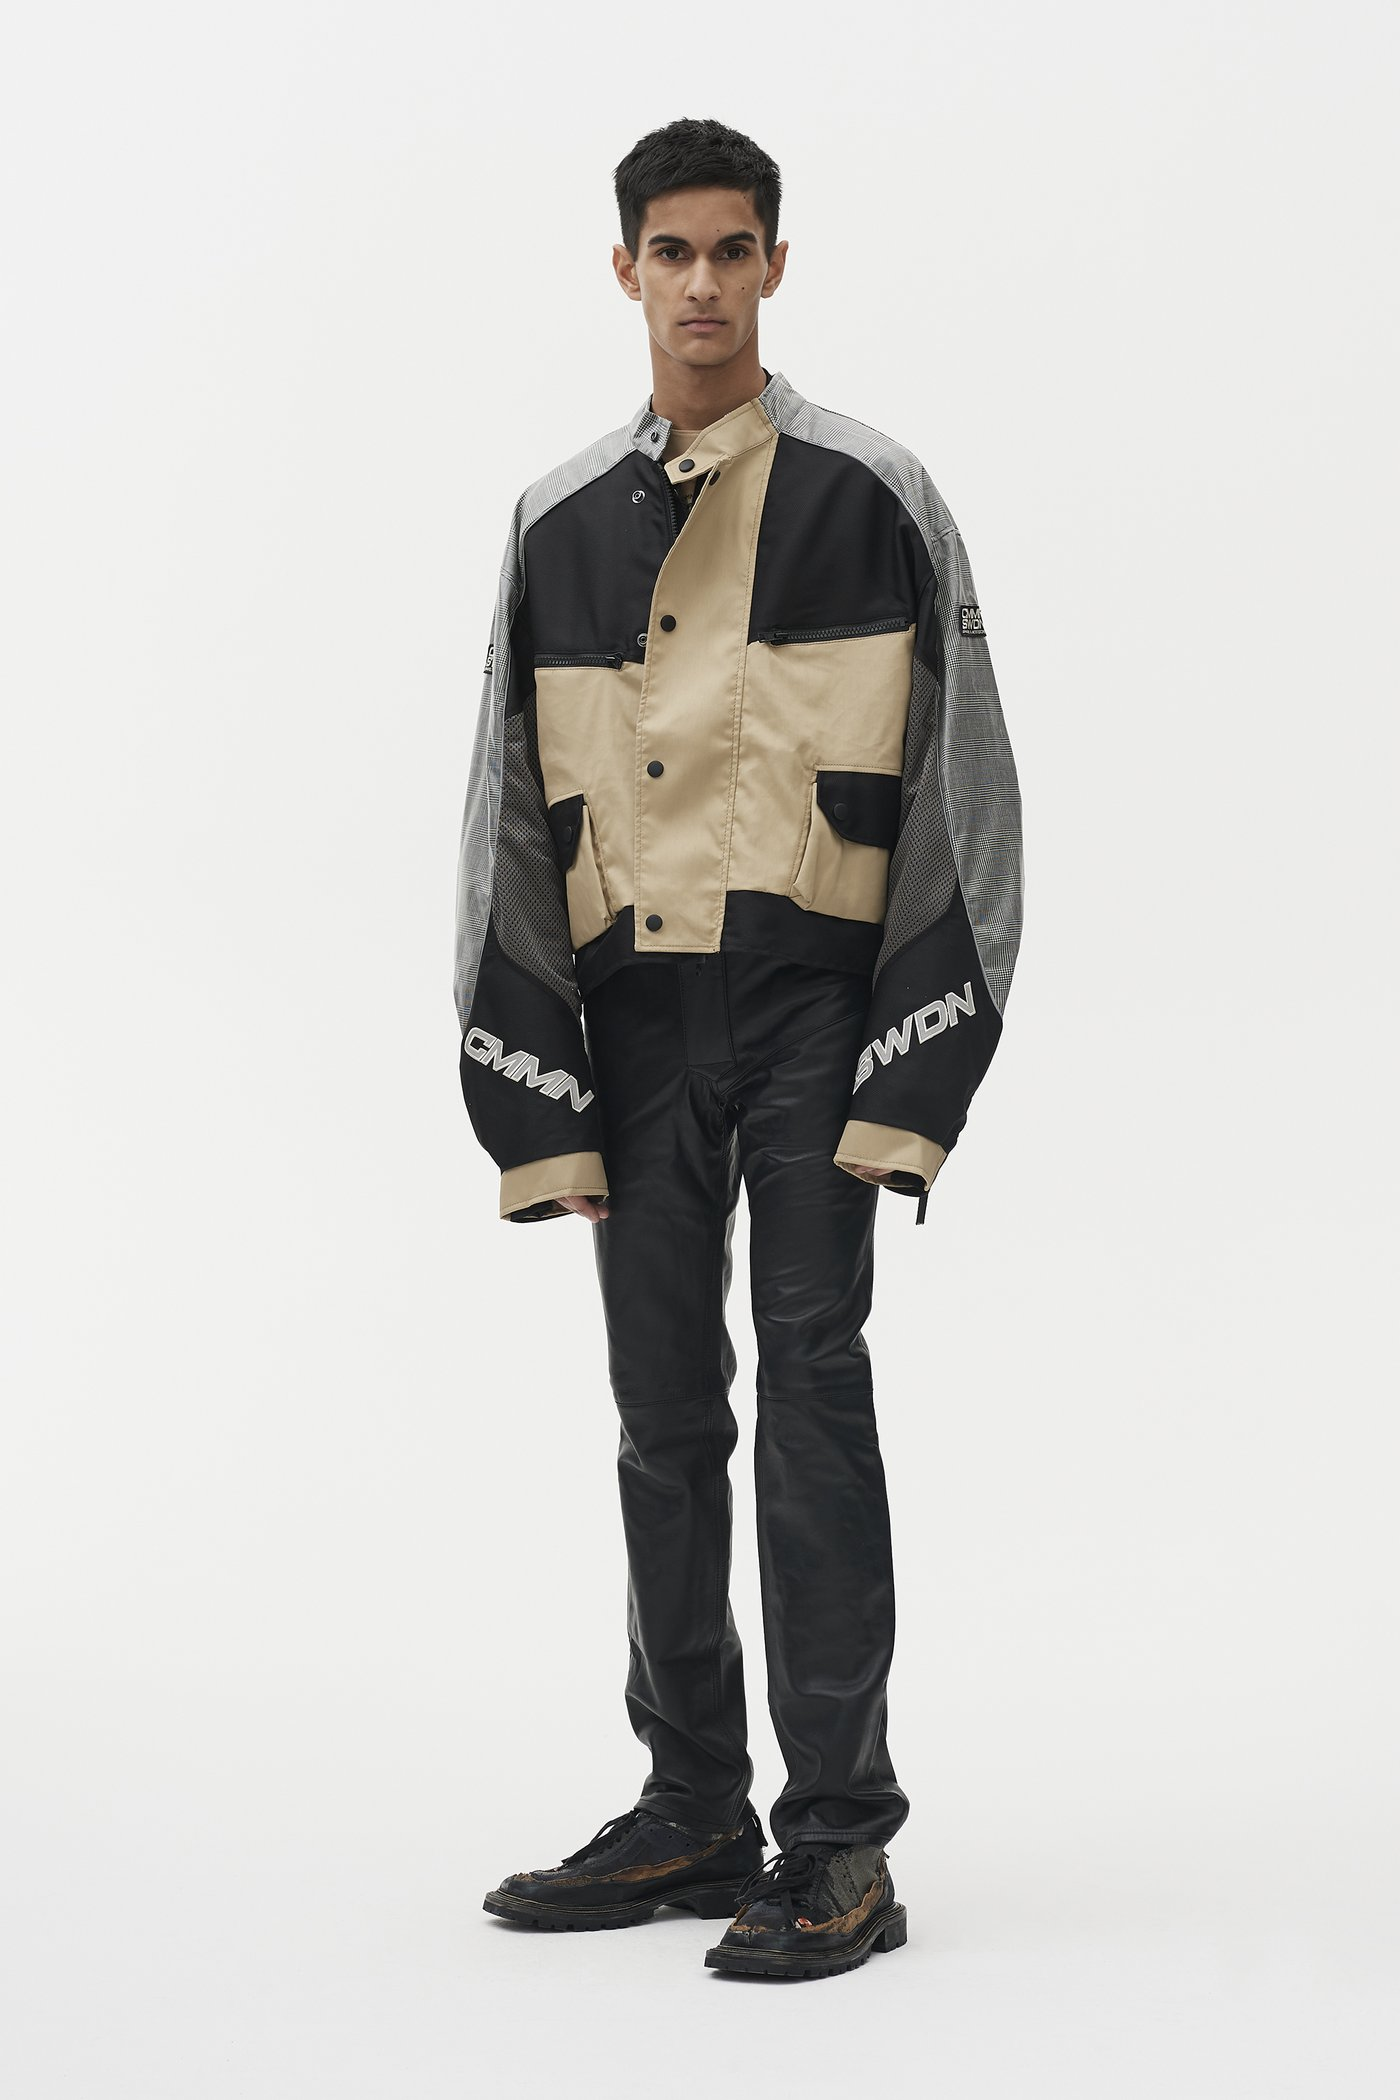 CMMN SWDN jacket - £1,380 - Dare to be different